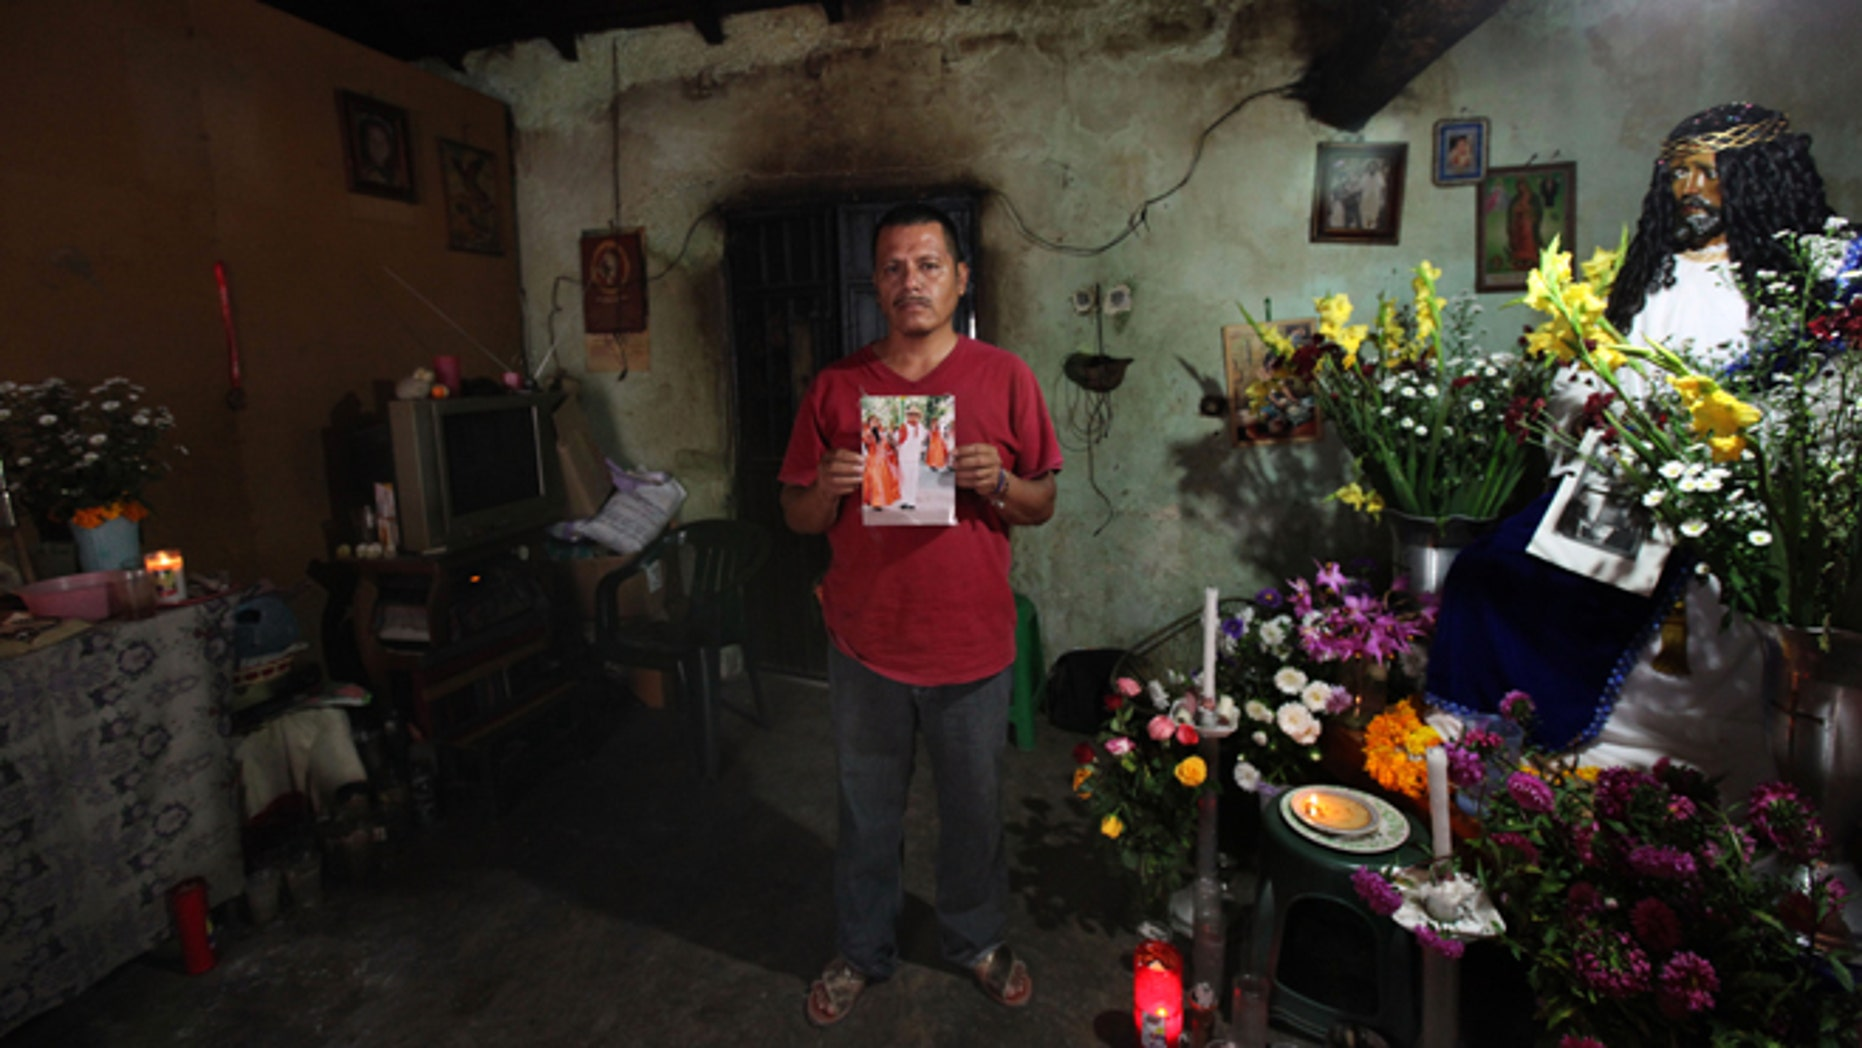 Clemente Rodriguez holds a photo of his missing son Christian Rodriguez Telumbre in his home in Tixtla, Mexico.